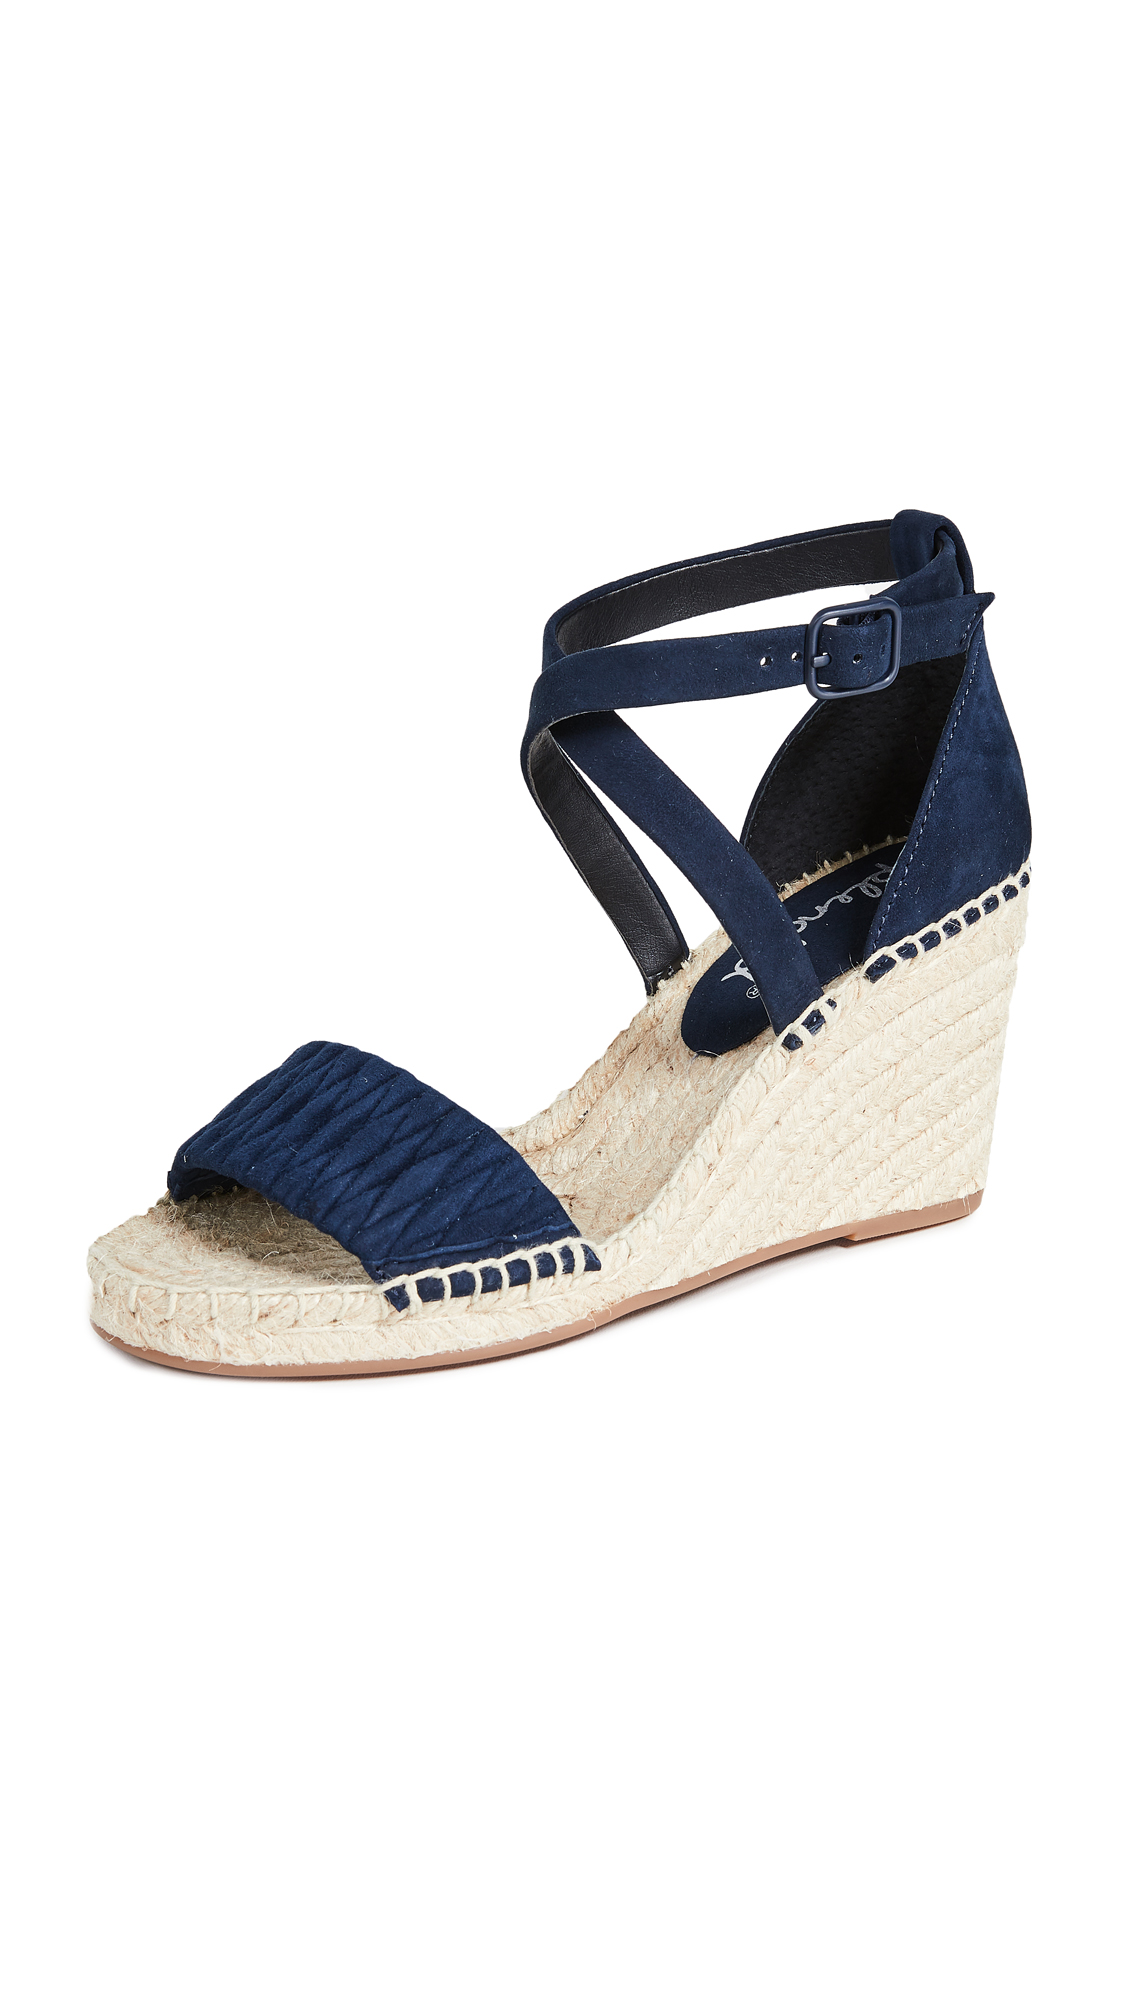 Splendid Sheri Wedge Espadrilles - Navy